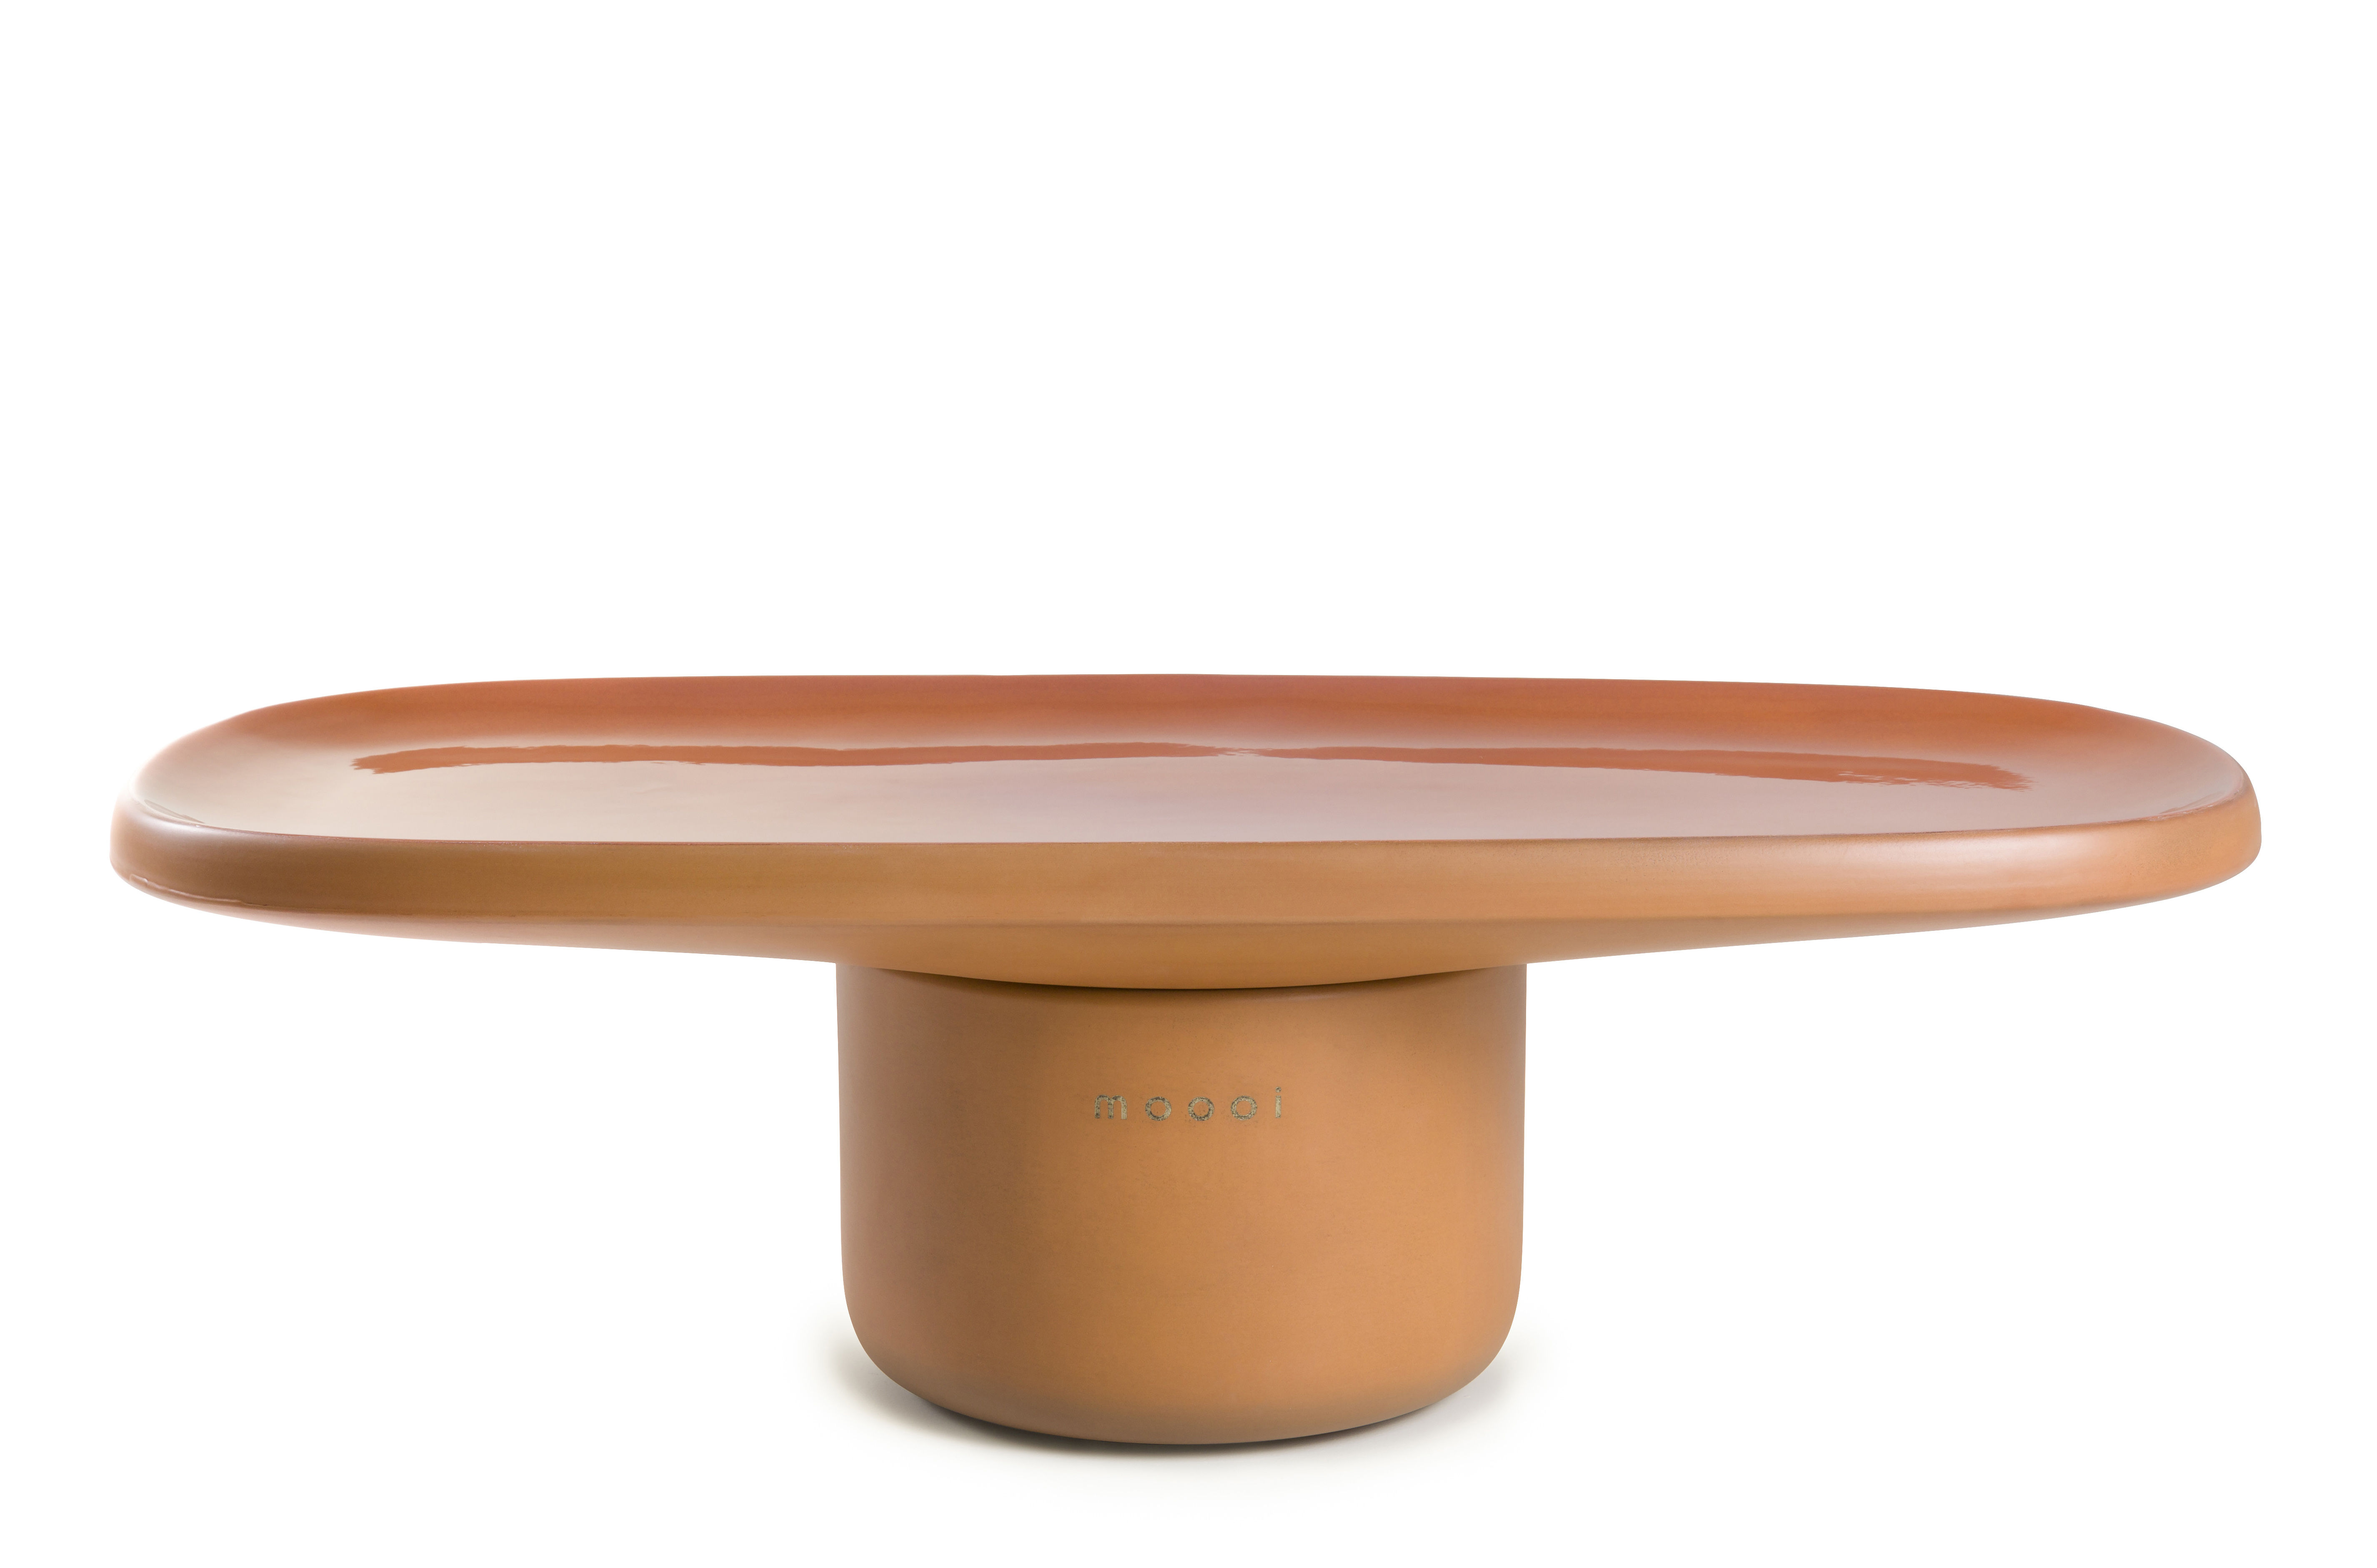 Furniture - Coffee Tables - Obon Coffee table - / Terracotta - 92 x 44 x H 28 cm by Moooi - Terracotta - Moulded terracotta